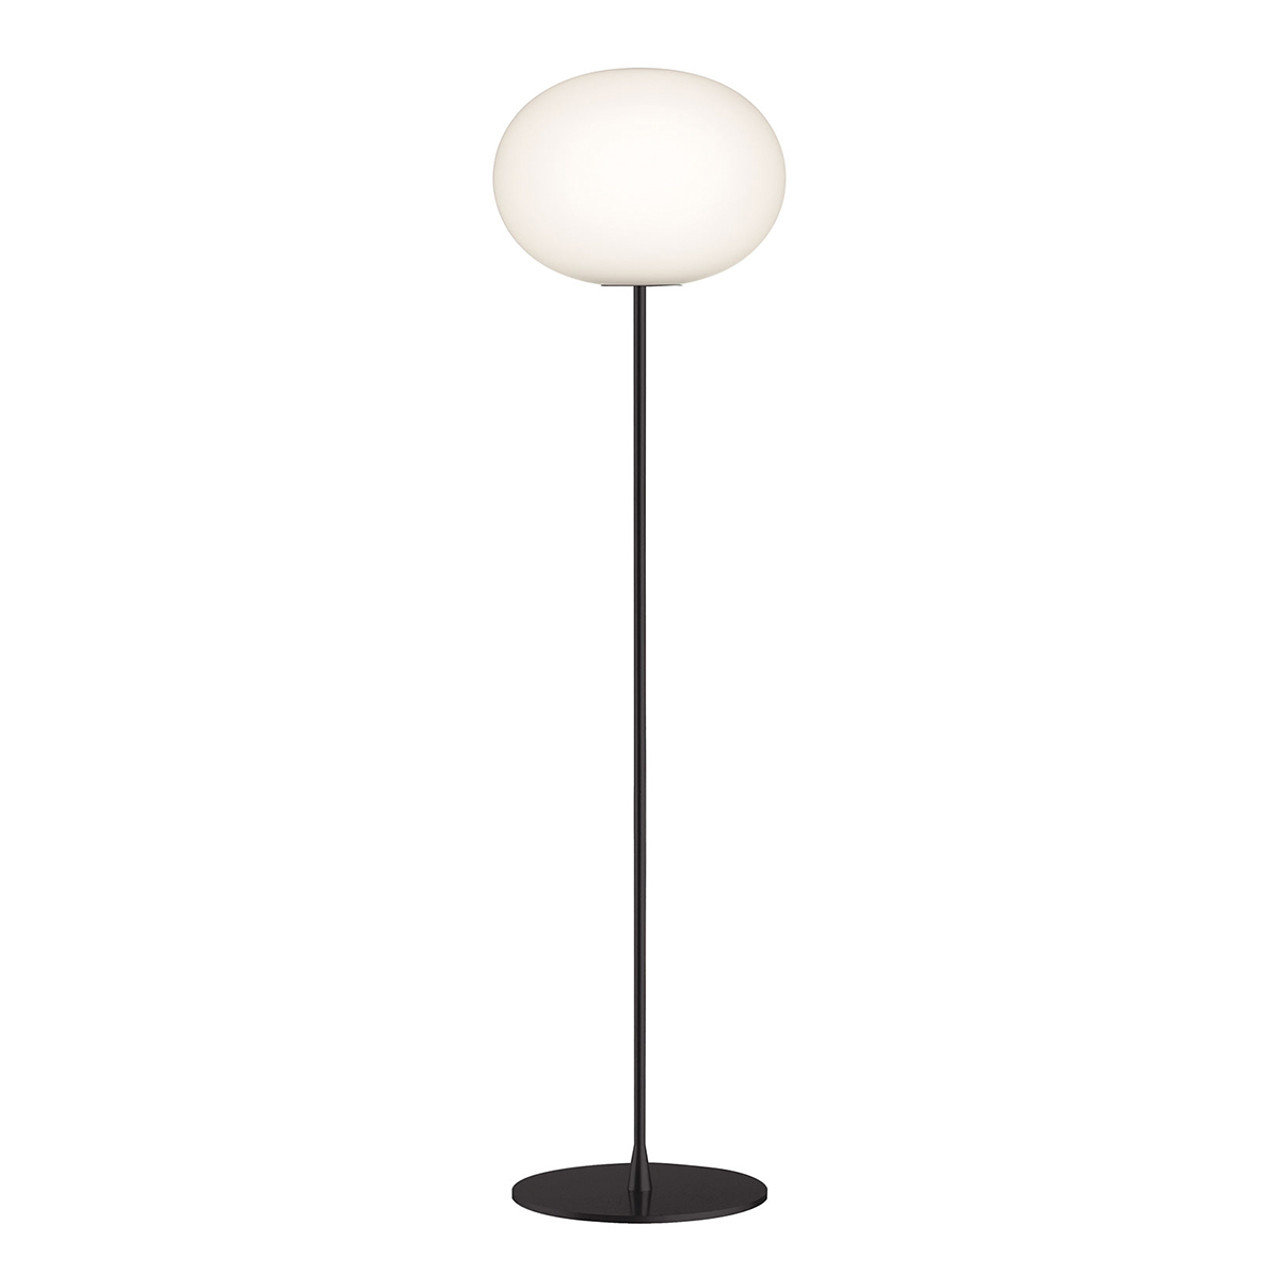 Floor Lamps Dimmable Trend This Year @house2homegoods.net